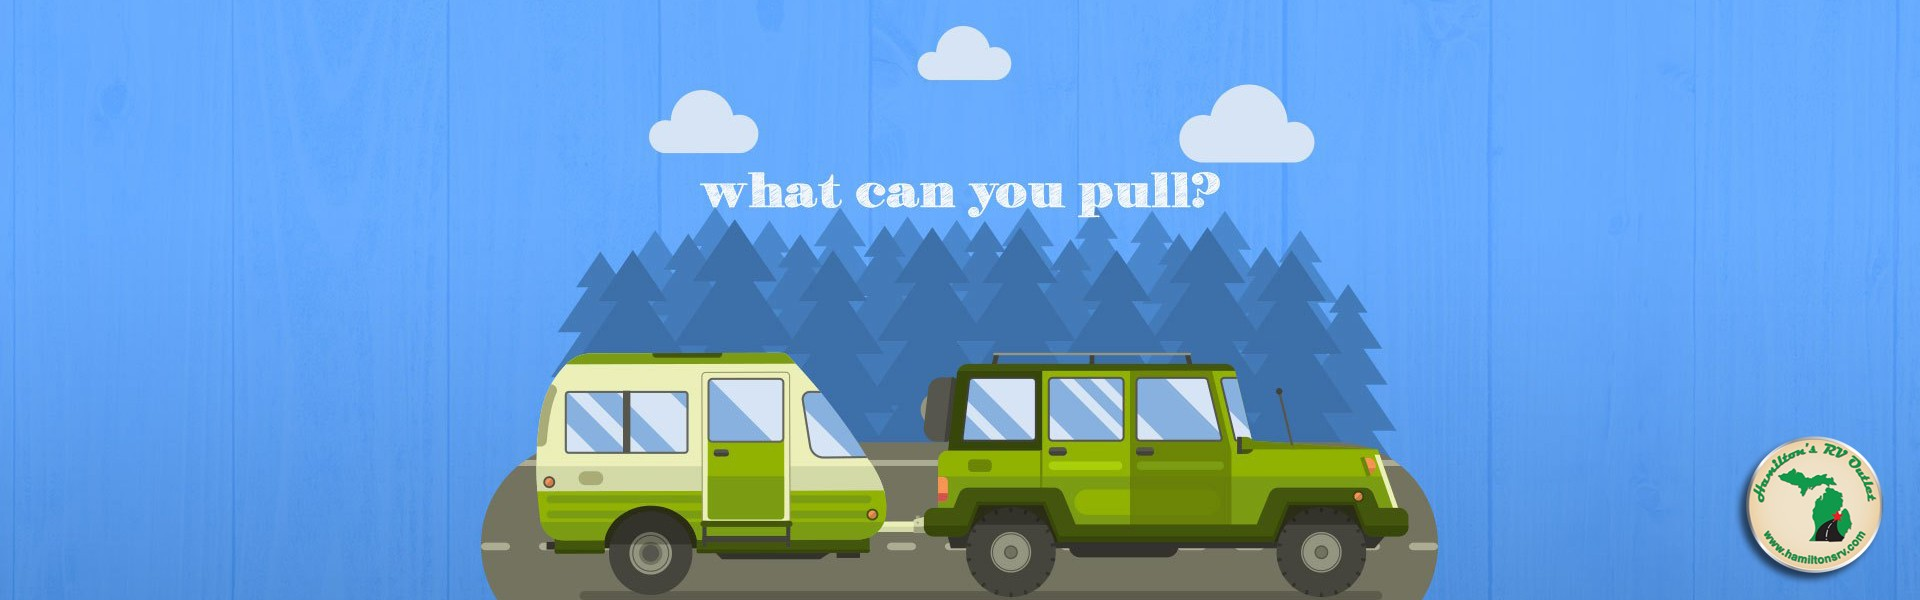 Jeep towing travel trailer RV - What can you pull? Banner